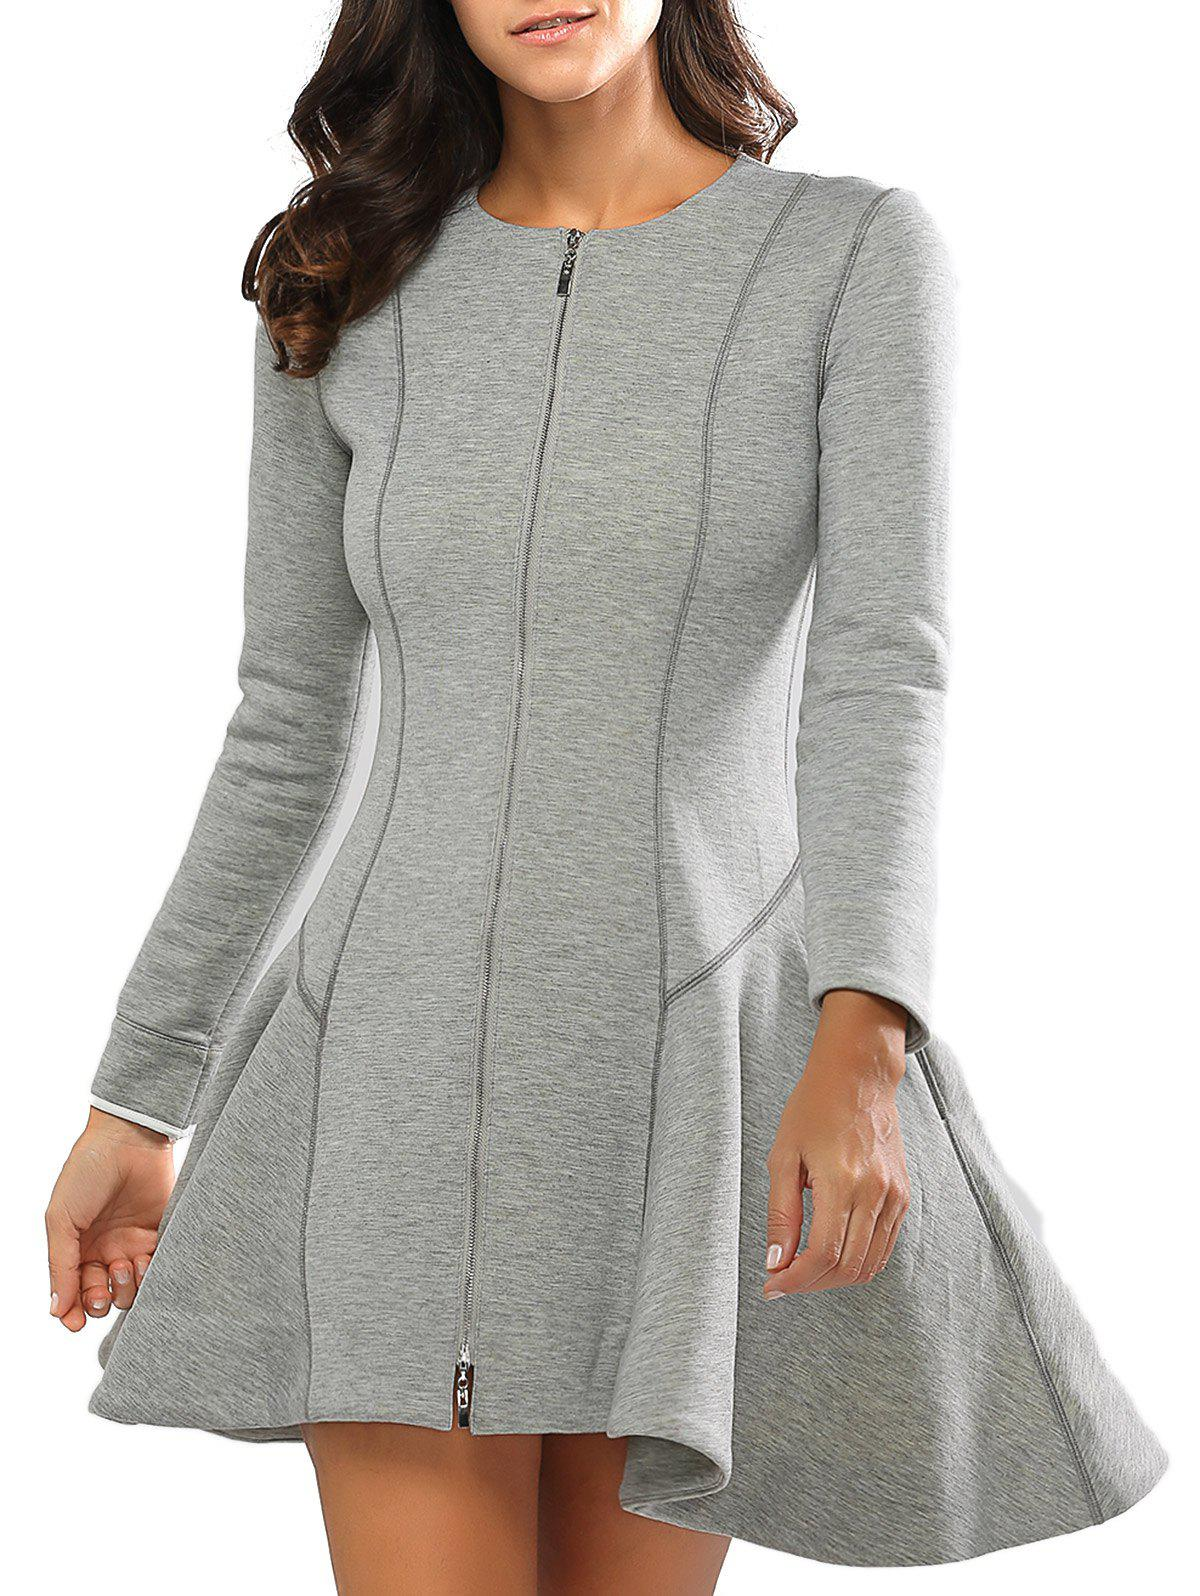 Long Sleeves Zipper Design A Line Dress - GRAY L